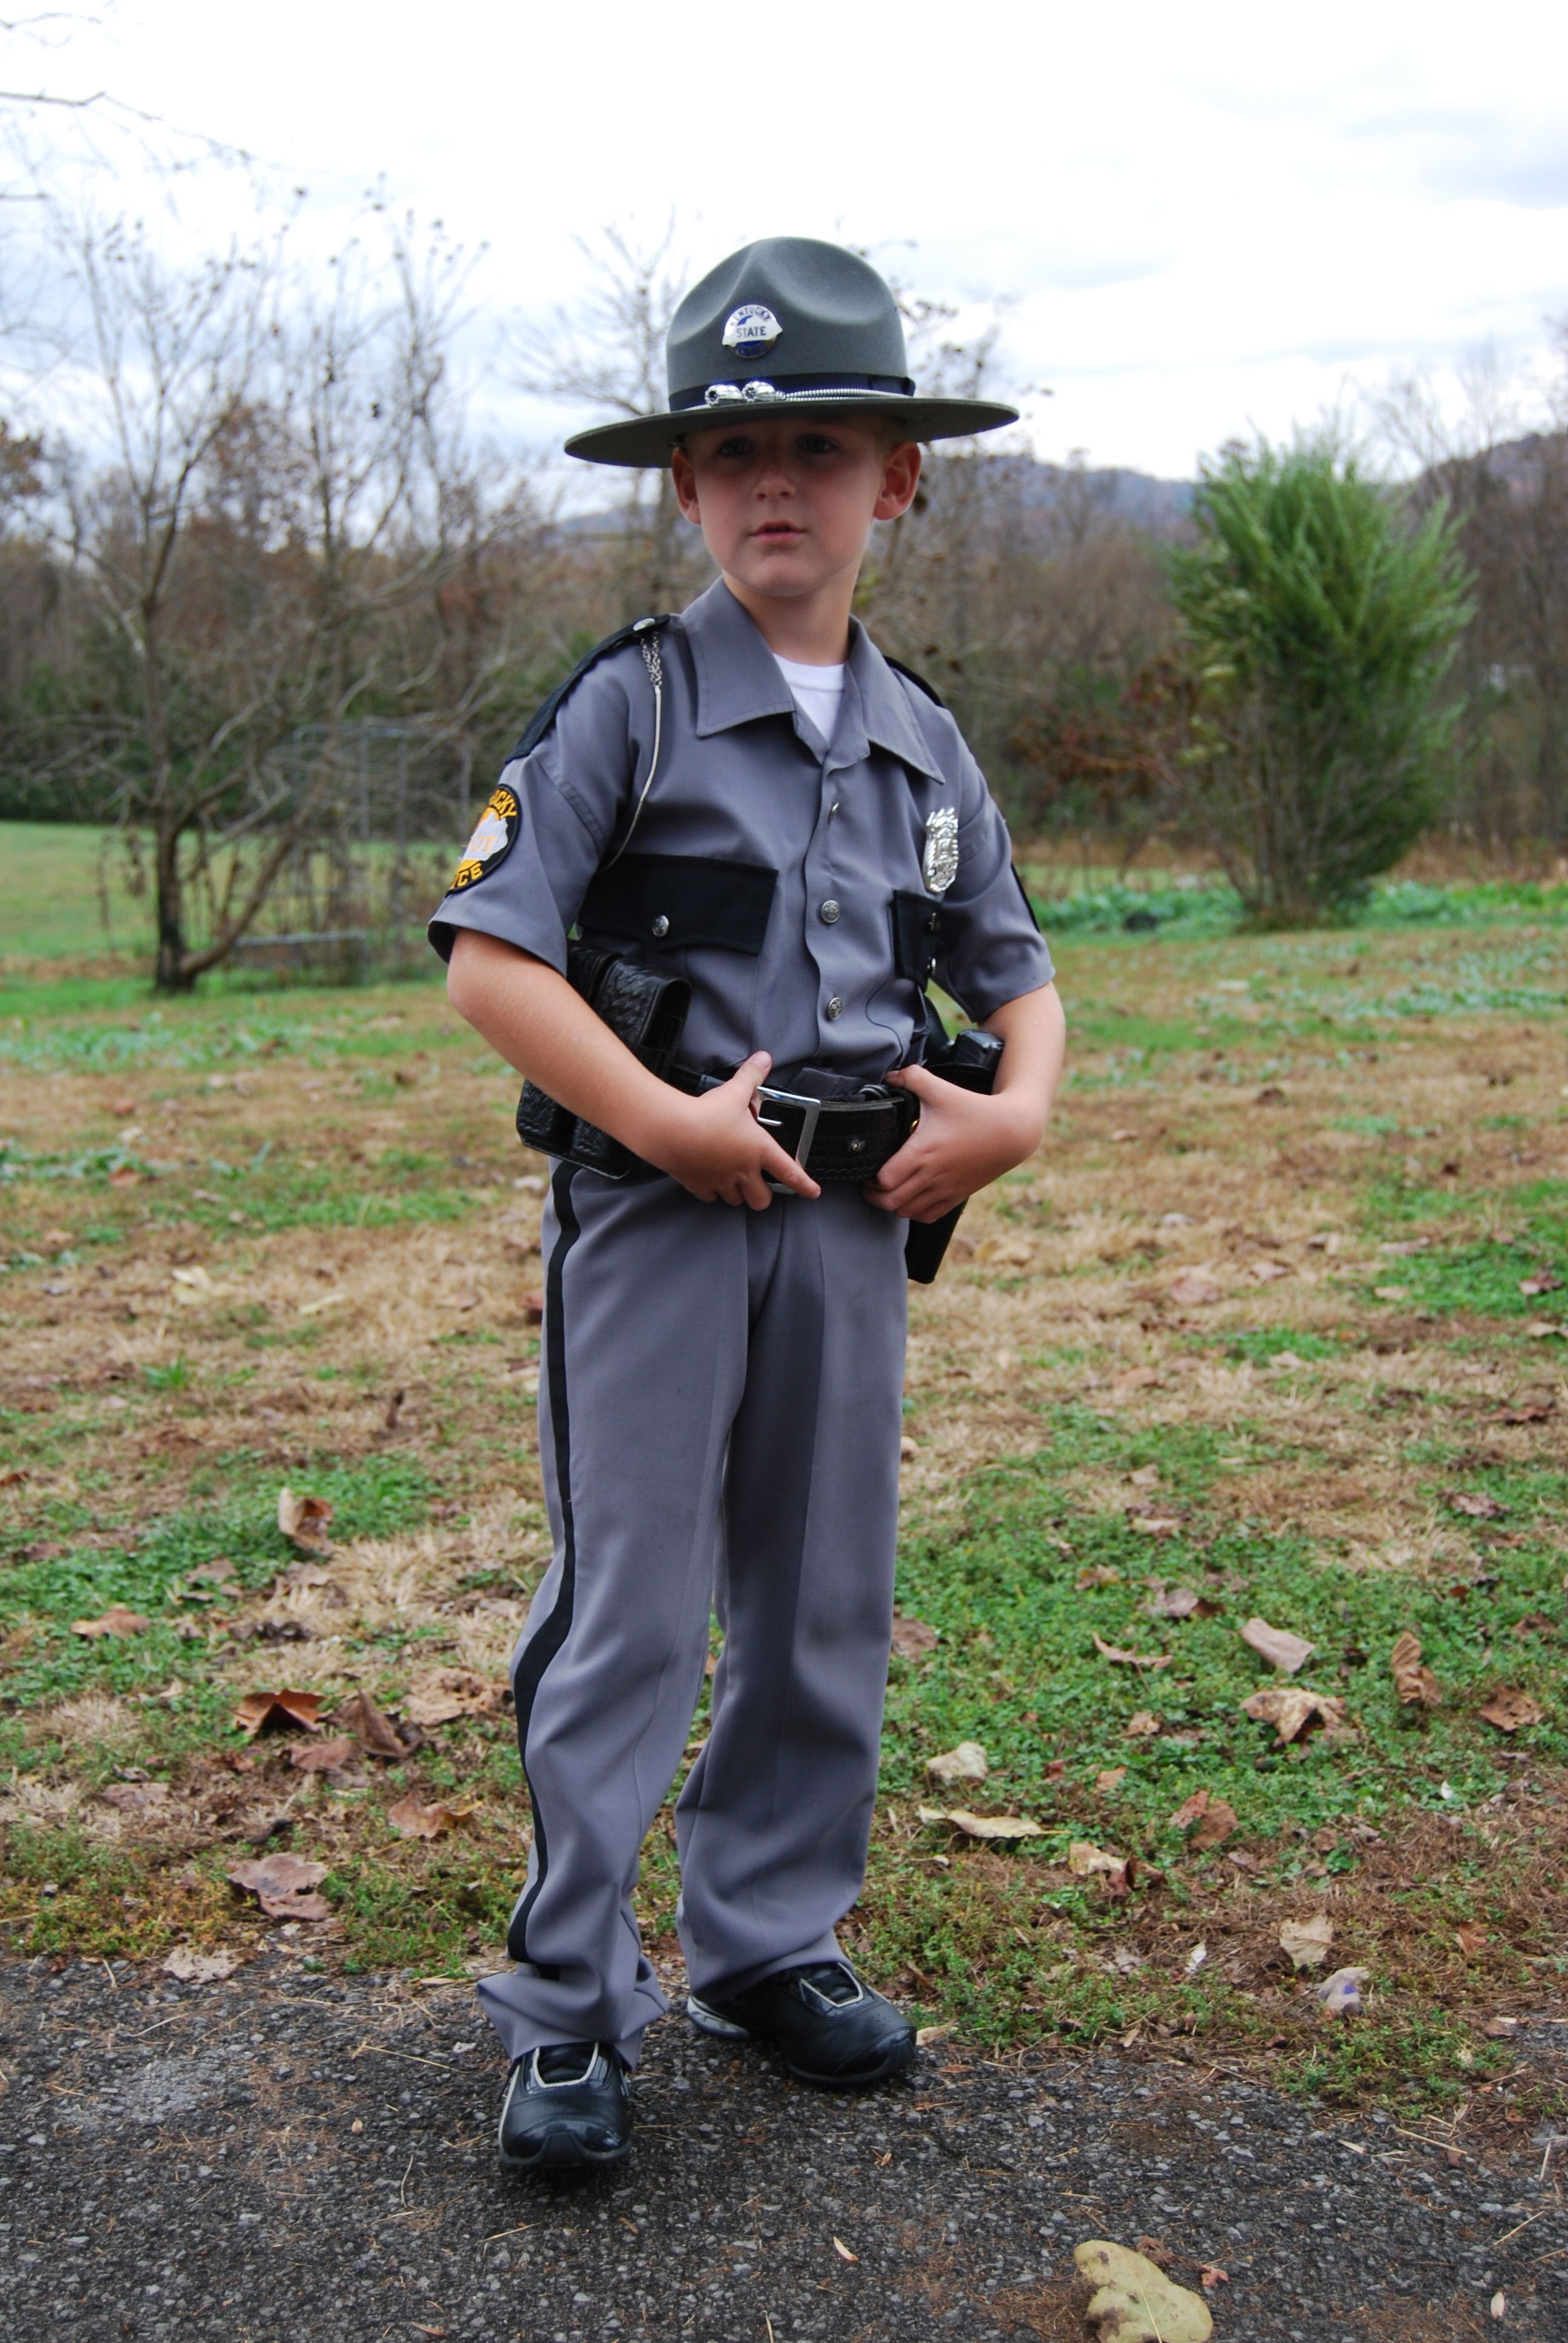 Kentucky State Police Halloween Costume | Things I've Made ...